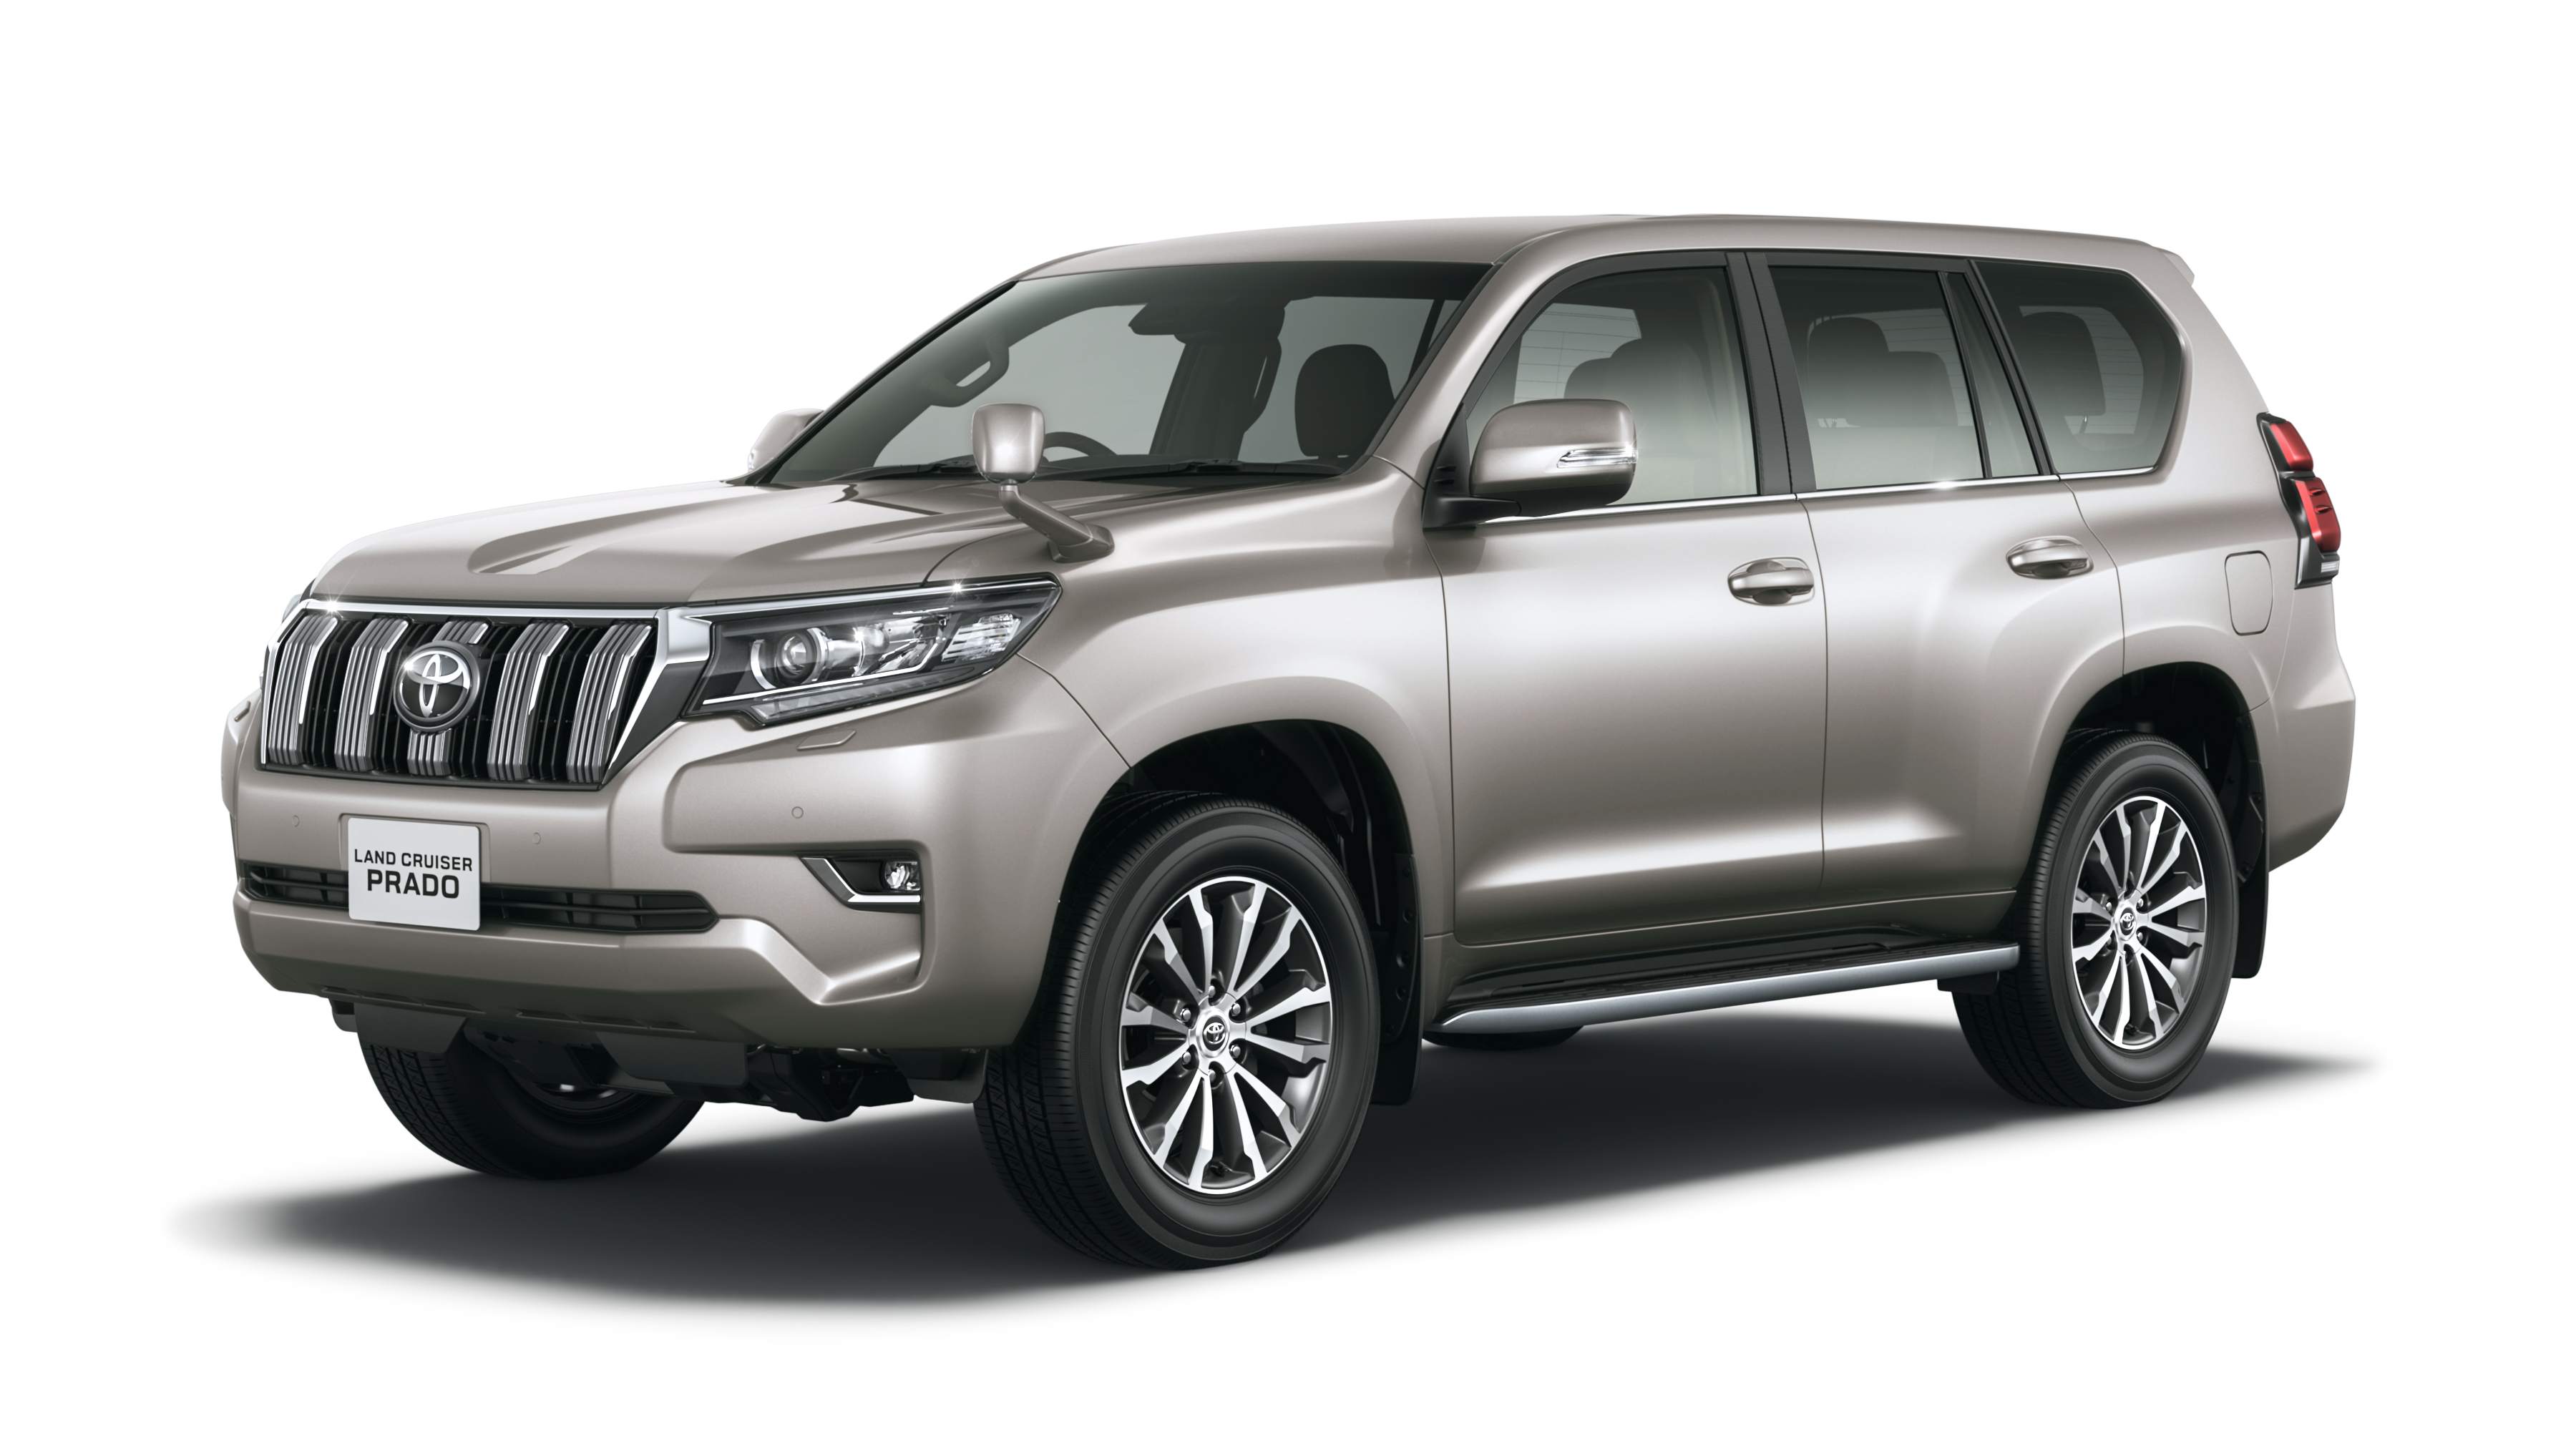 2018 Toyota Land Cruiser Prado facelift unveiled Image 709702